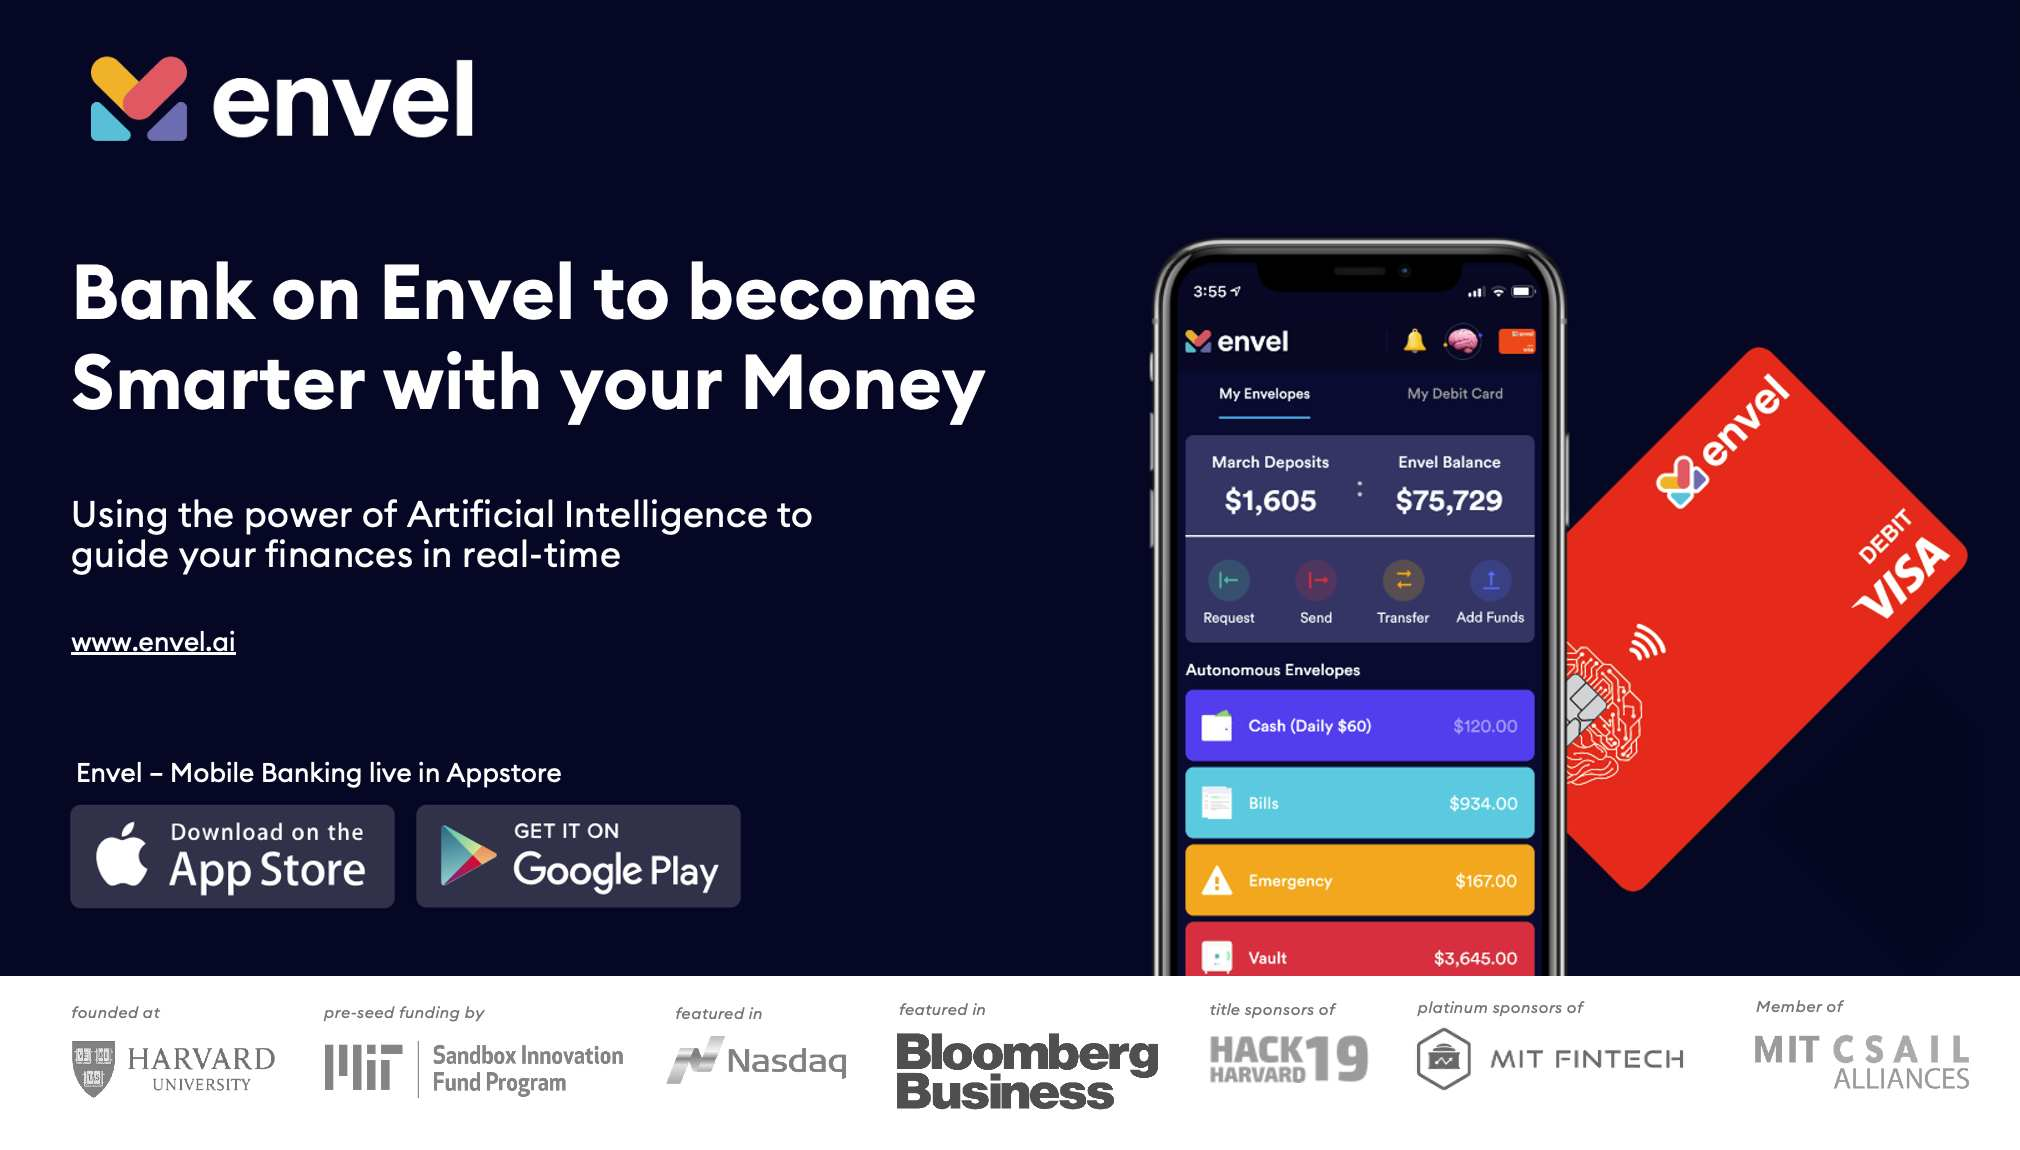 Download the Envel App and Sign-up for an Account